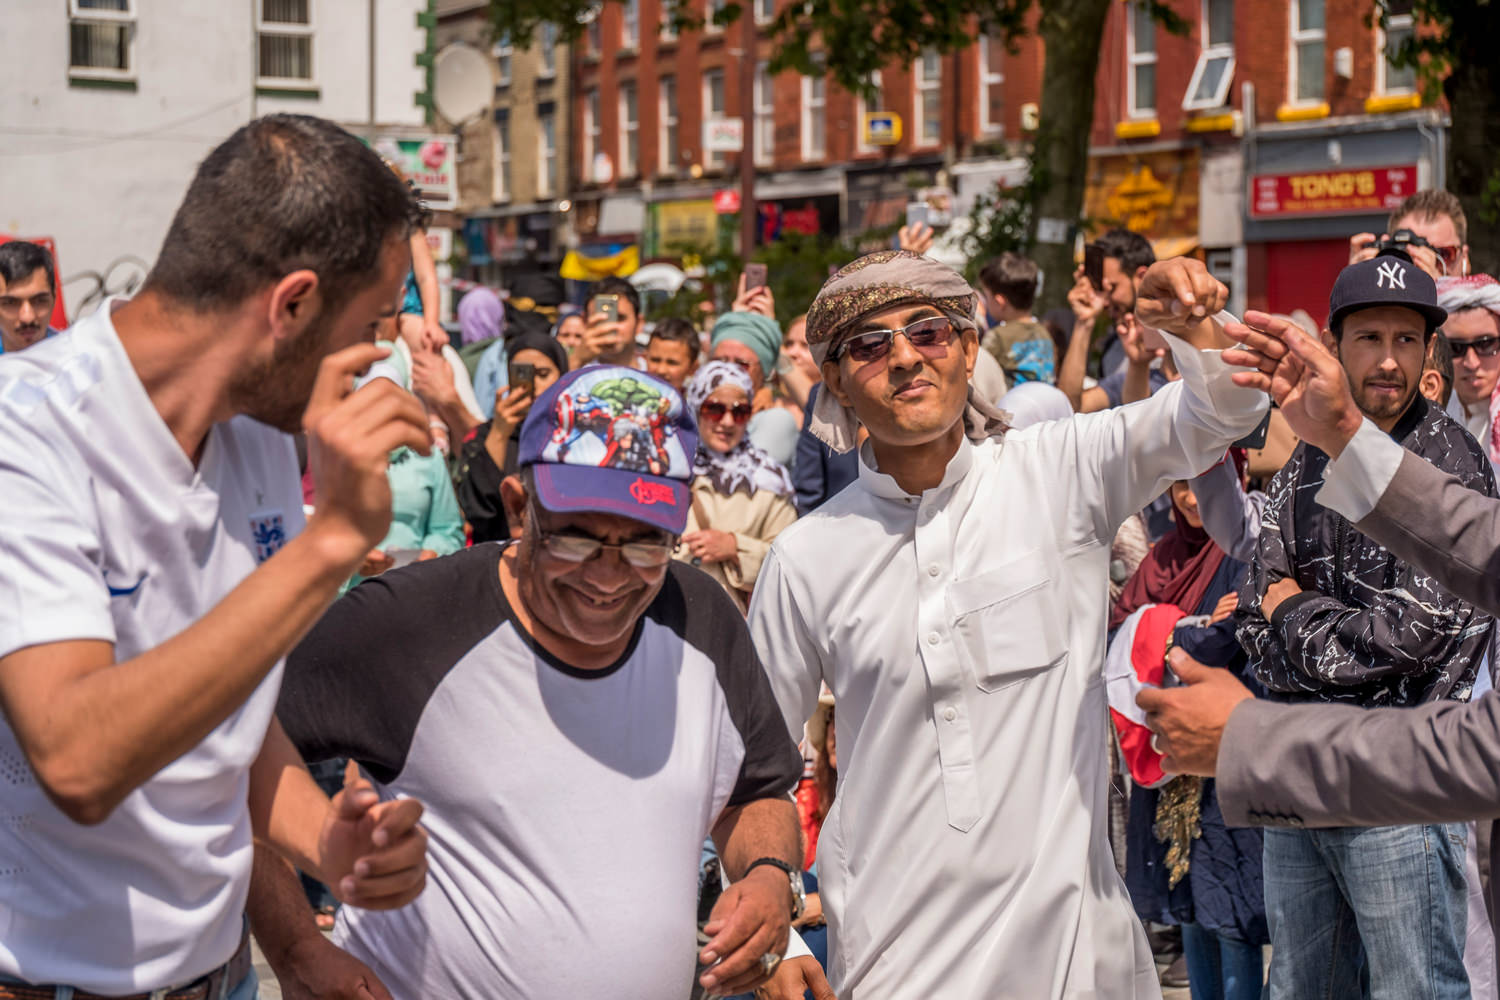 A crowd of people. Three men, one in traditional Arab clothes, are dancing and smiling.